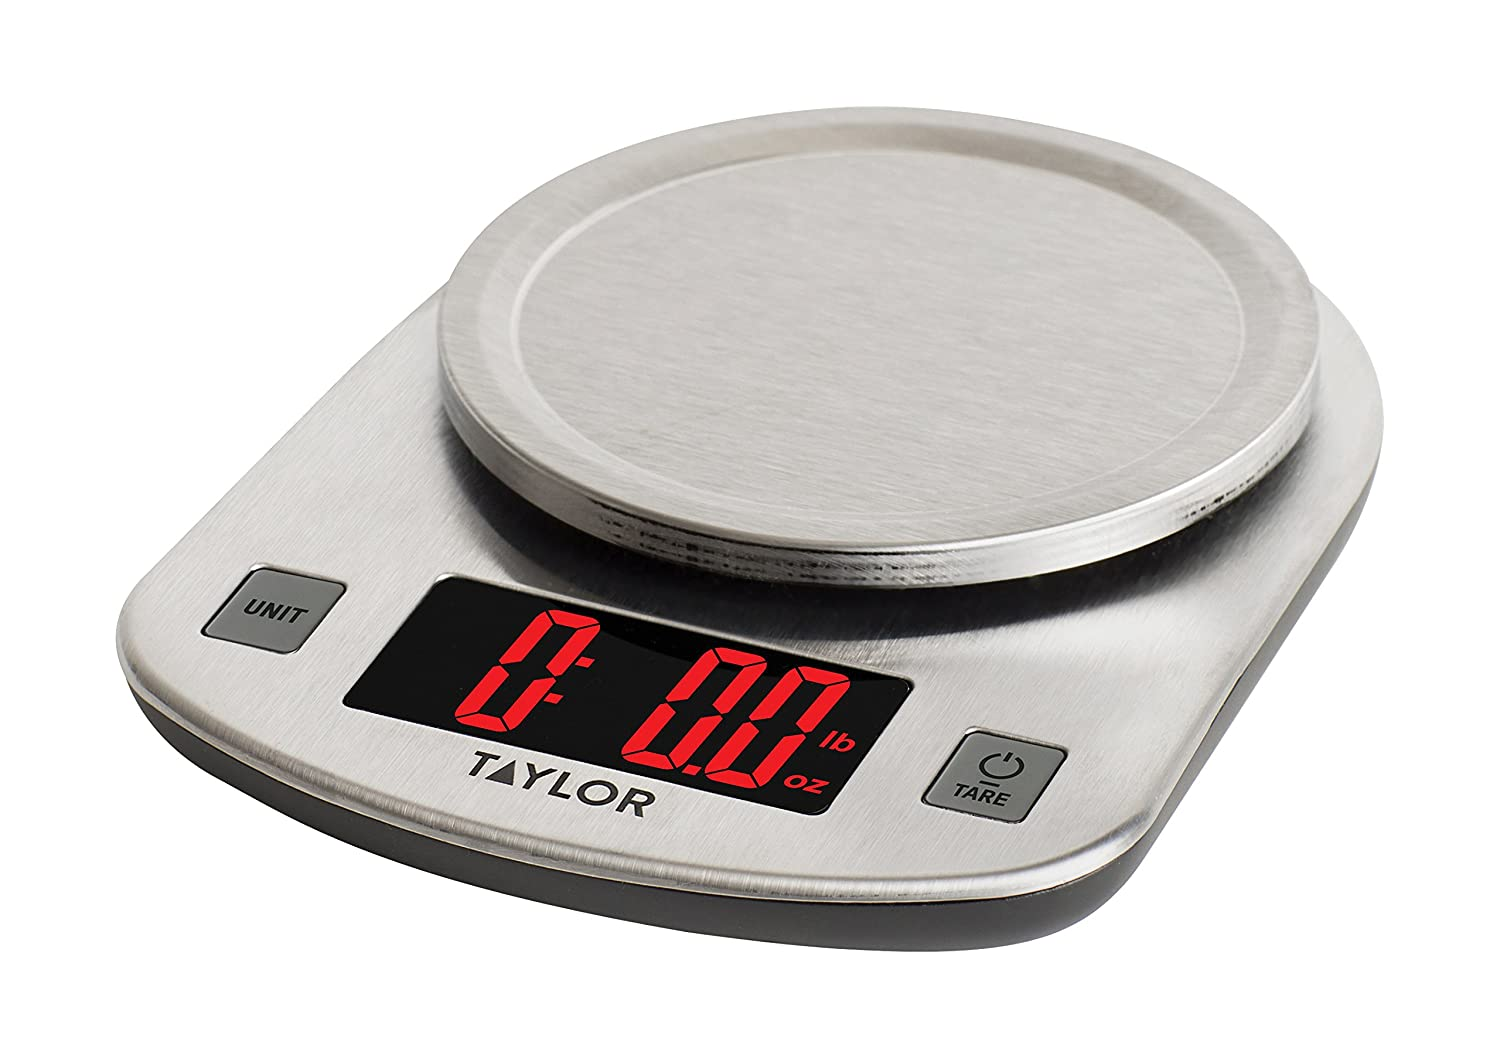 Amazon.com: Taylor Digital Stainless Steel LED Kitchen Scale ...